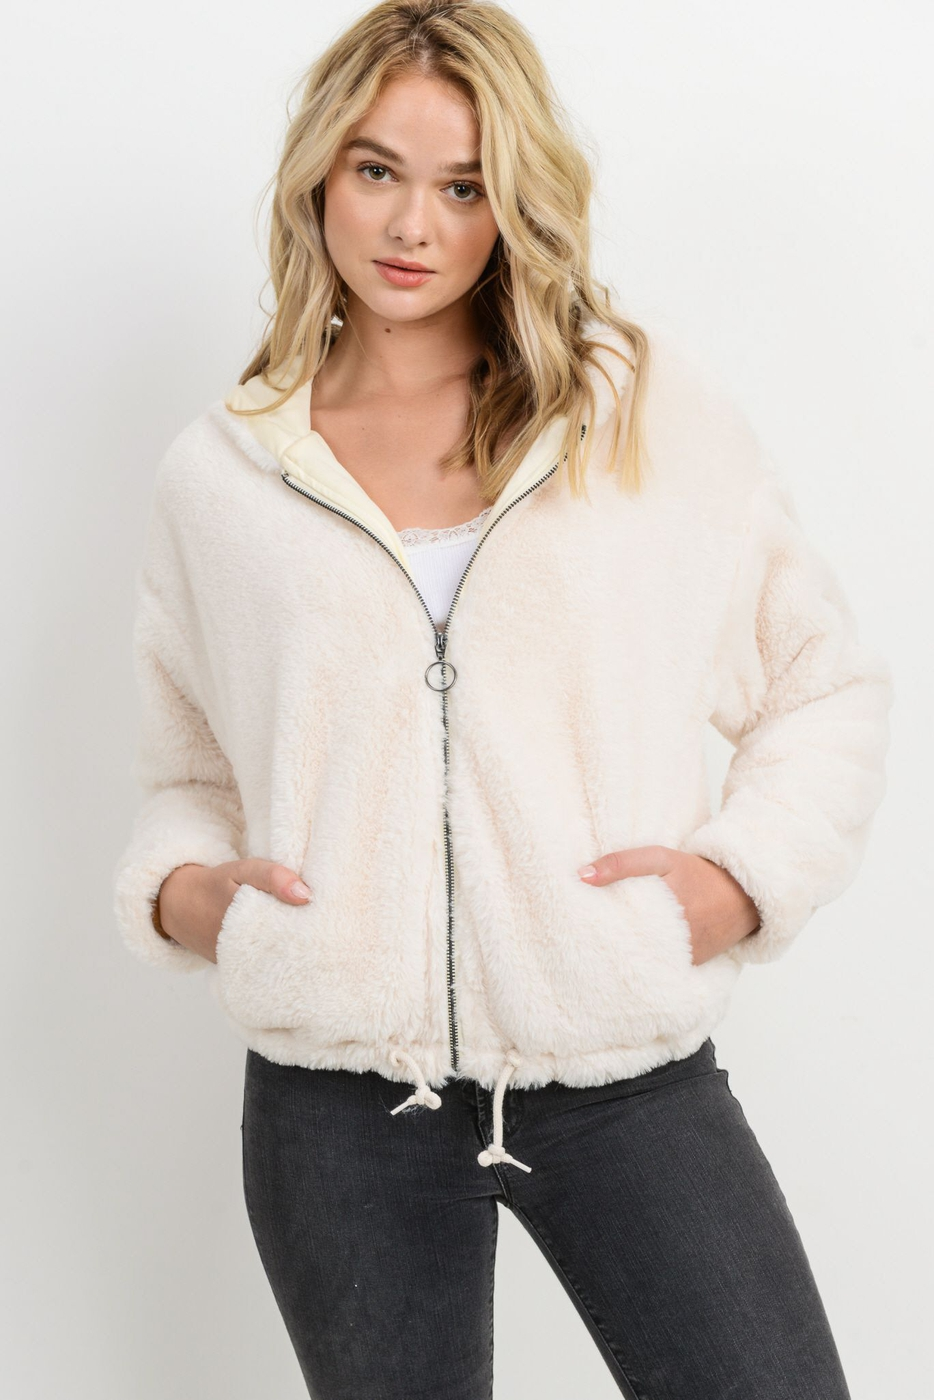 Fur Drawstring Zipper Jacket - orangeshine.com